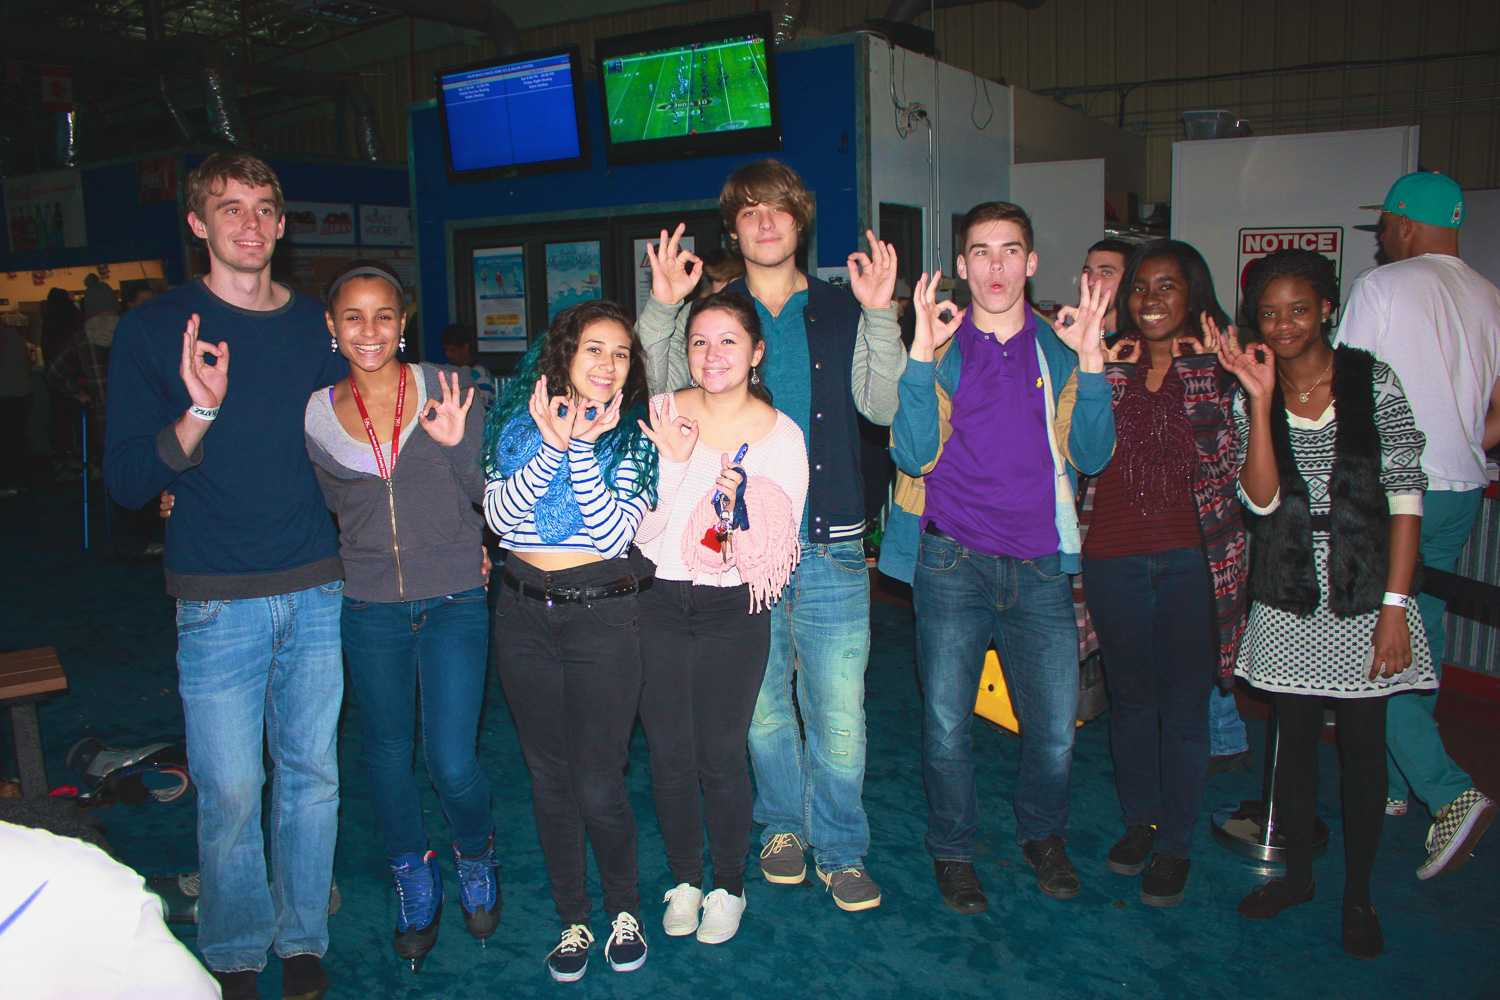 Students from FAU's Honors College in Jupiter pose for a photo at Palm Beach Skate Zone, during a Welcome Back Week event hosted by Campus Recreation.